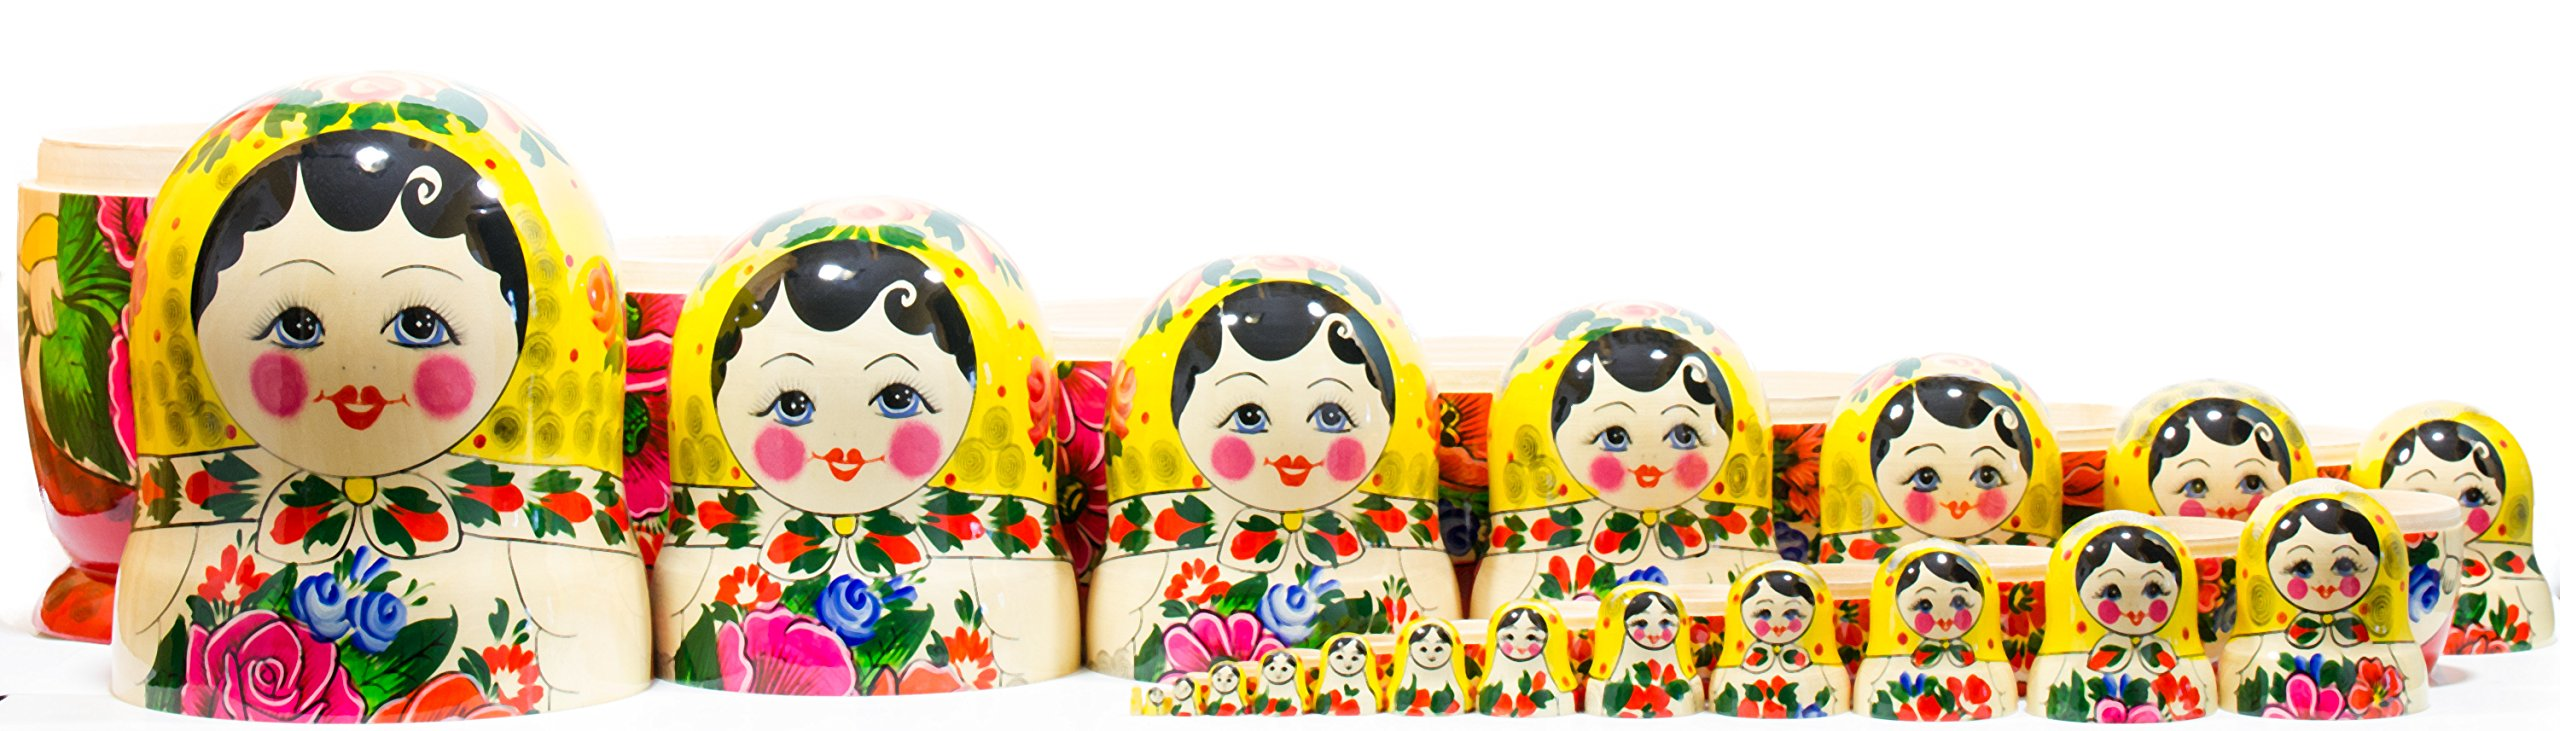 Russian Nesting Doll -Semenovo - Hand Painted in Russia - 6 Color|Size Variations - Wooden Decoration Gift Doll - Traditional Matryoshka Babushka (14``(20 Dolls in 1), Yellow - Red) by craftsfromrussia (Image #4)